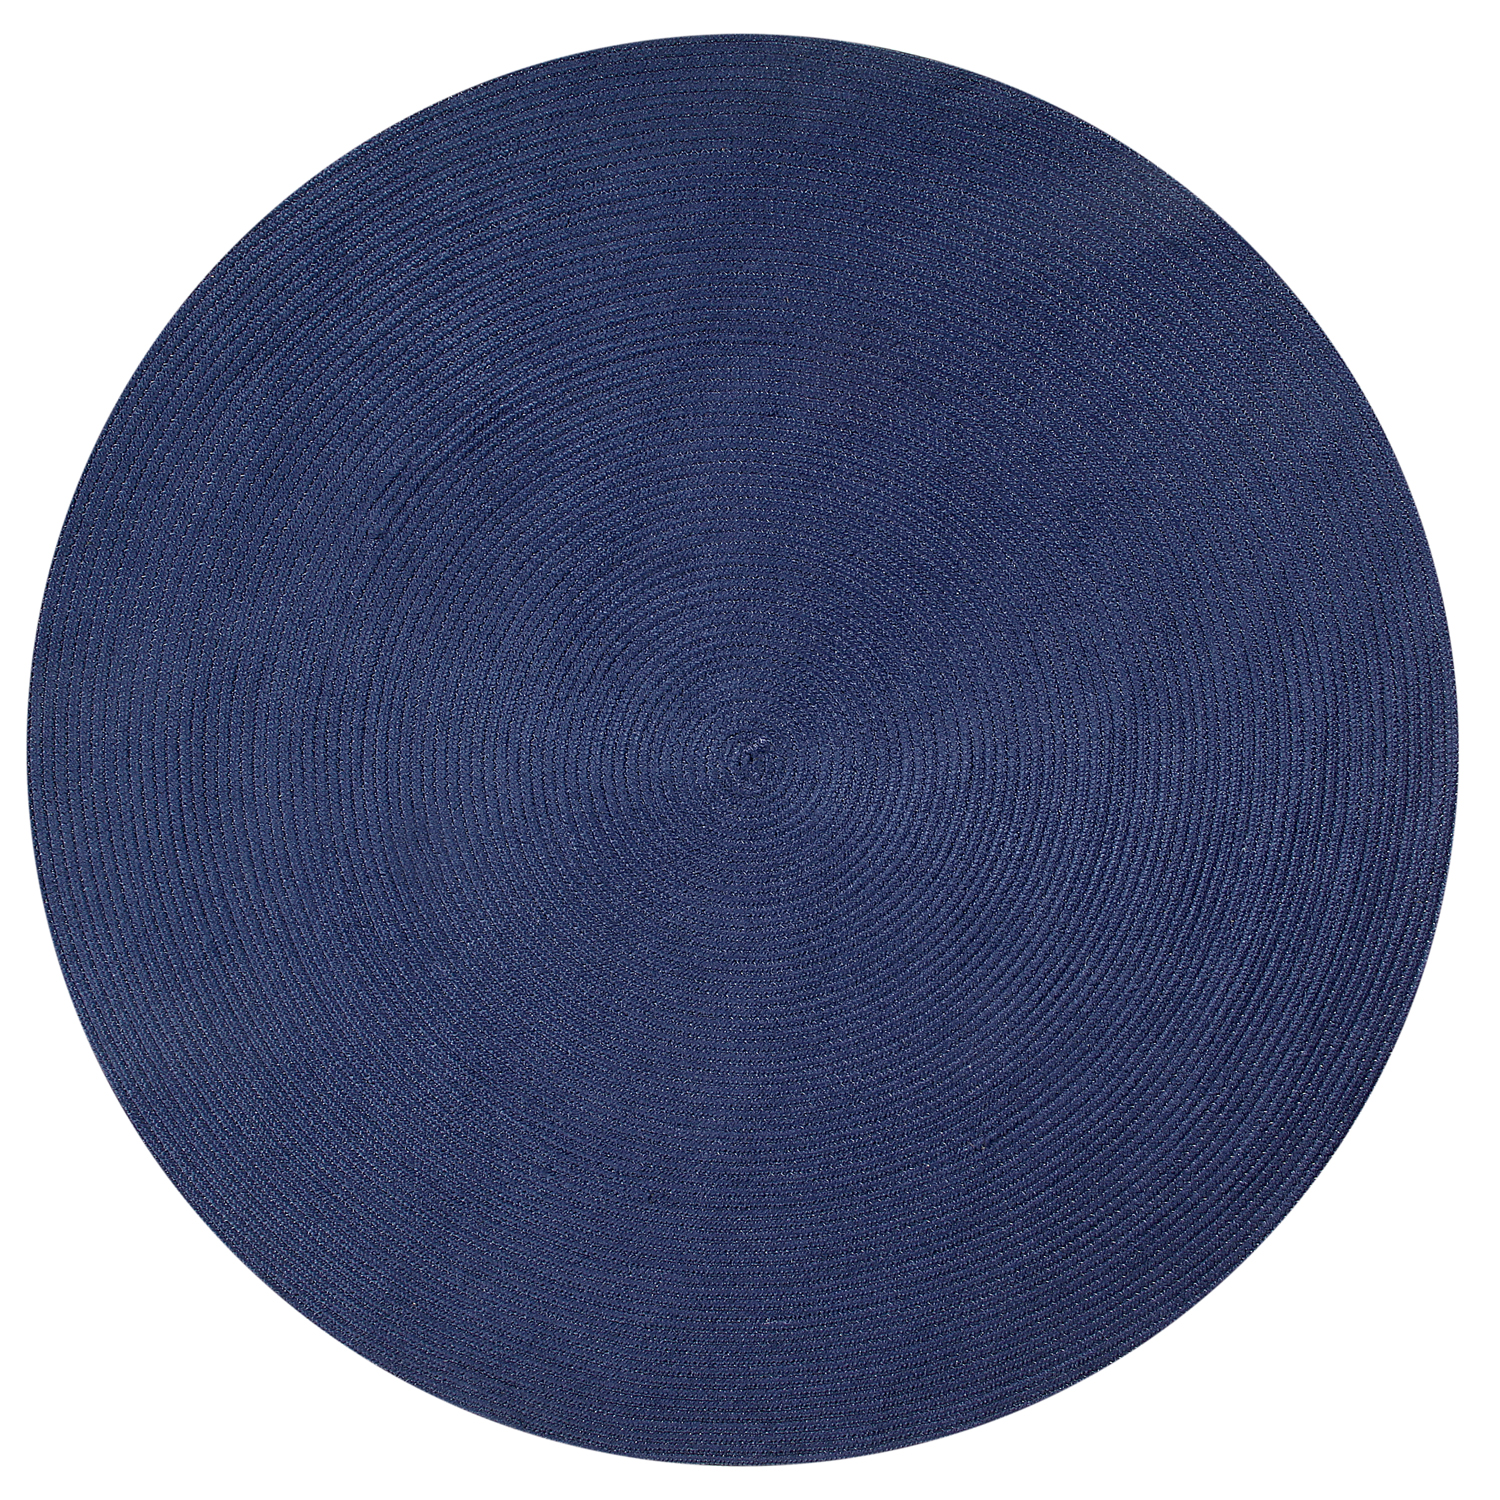 Country Braid 6' Round - Dark Blue Solid